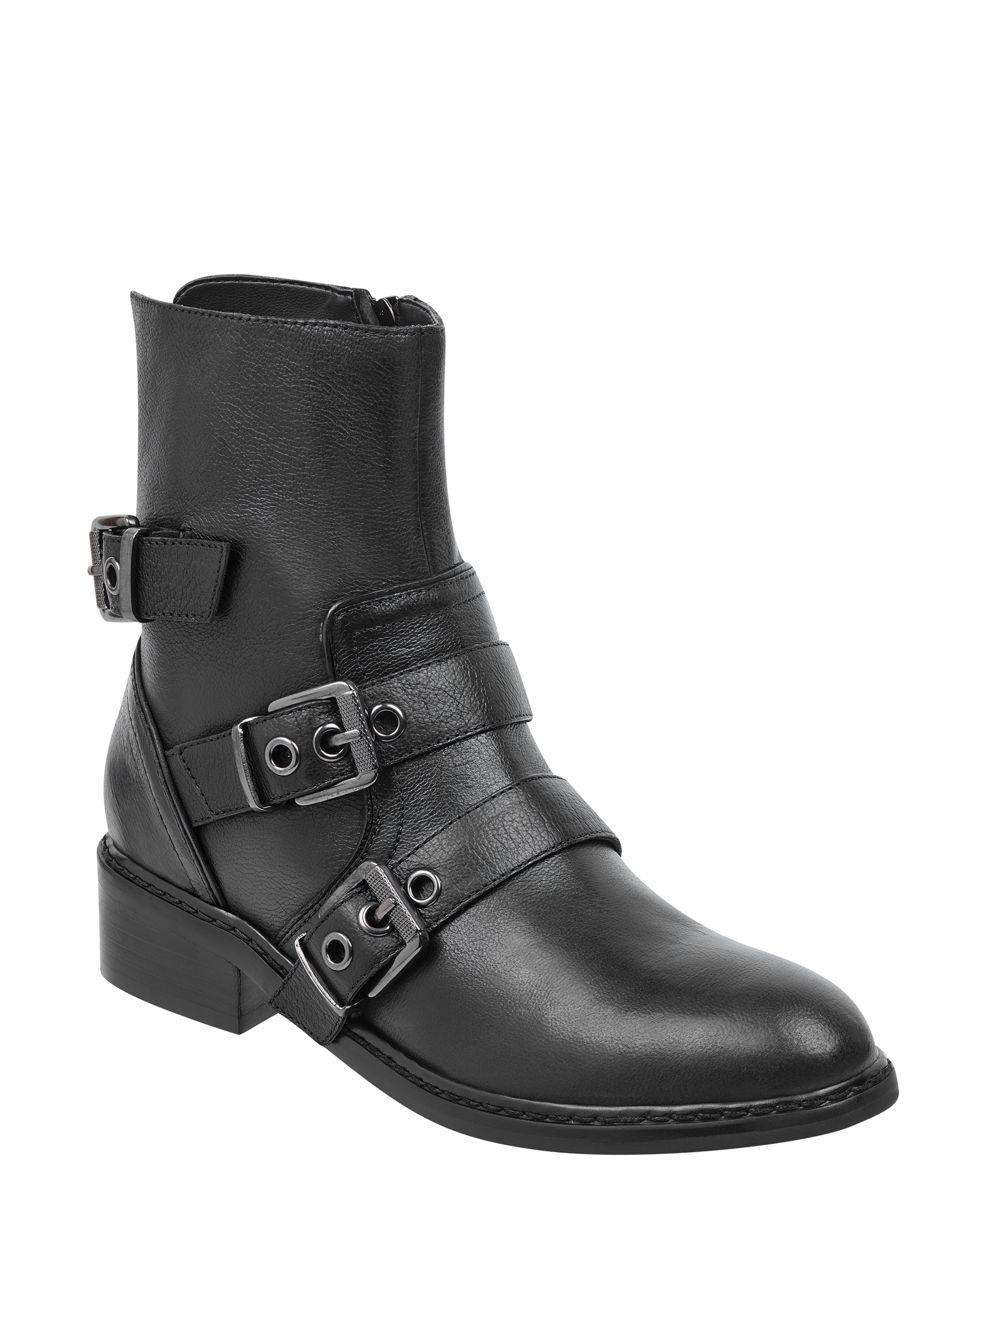 238a09cf339 Kendall + Kylie Nori Leather Biker Boots in Black - Lyst